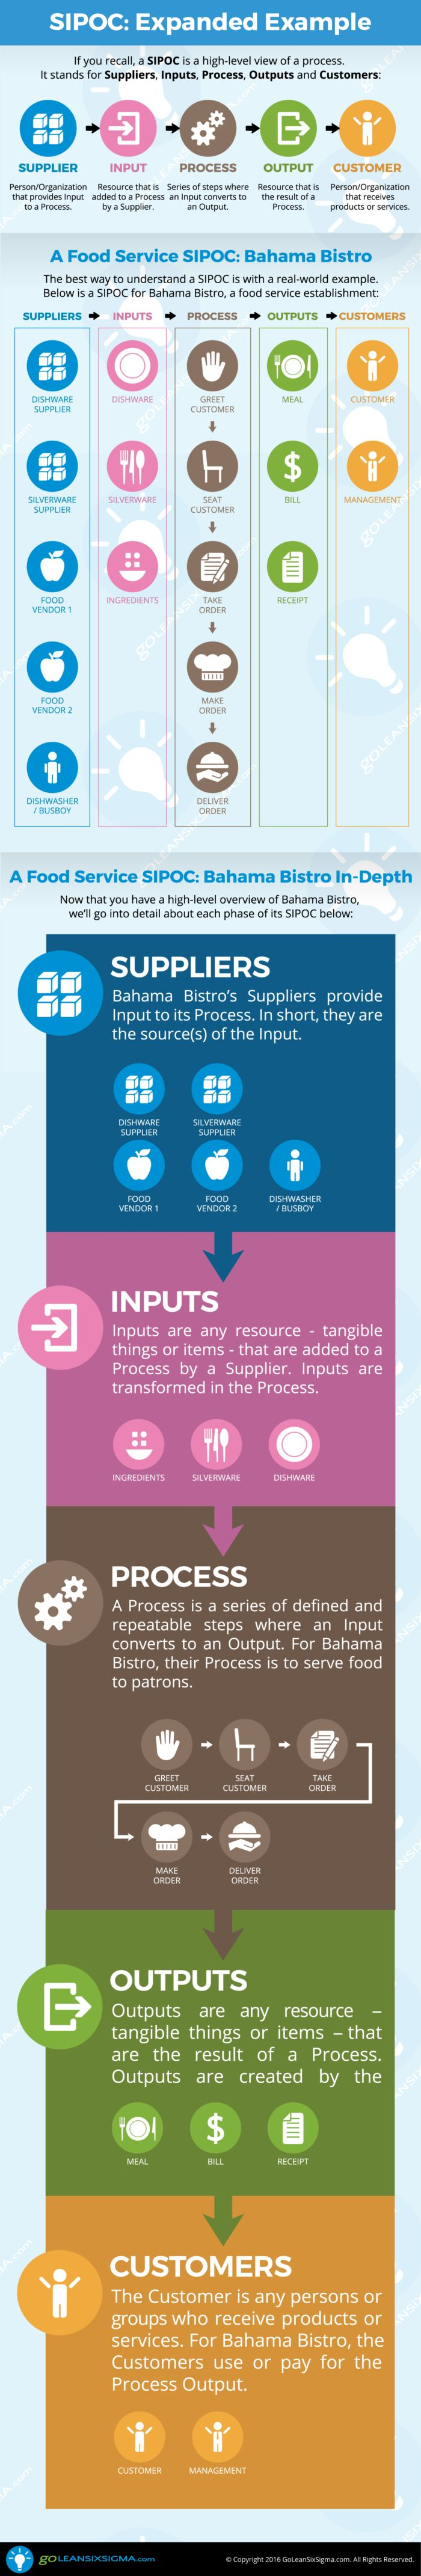 Lean Six Sigma: SIPOC Expanded Infographic - GoLeanSixSigma.com